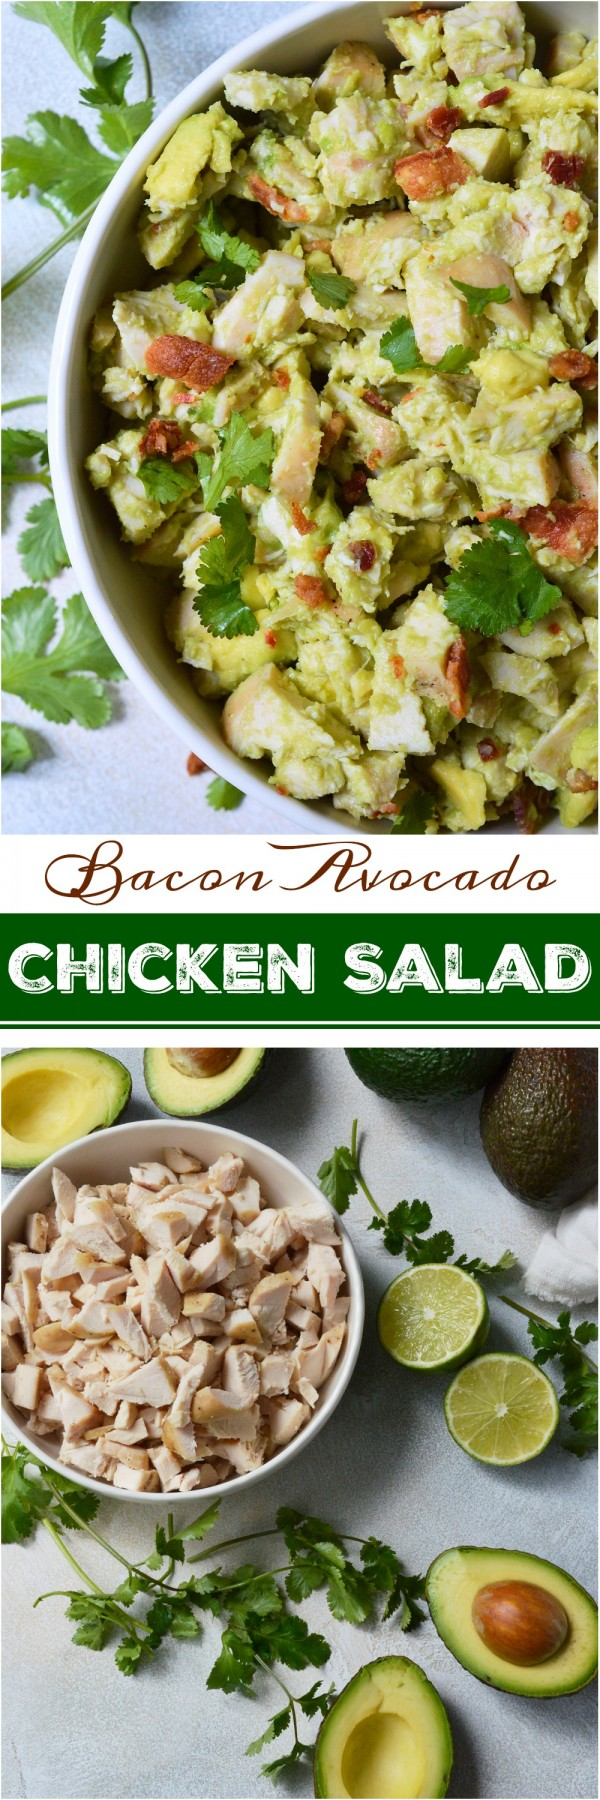 Get the recipe Bacon Avocado Chicken Salad @recipes_to_go